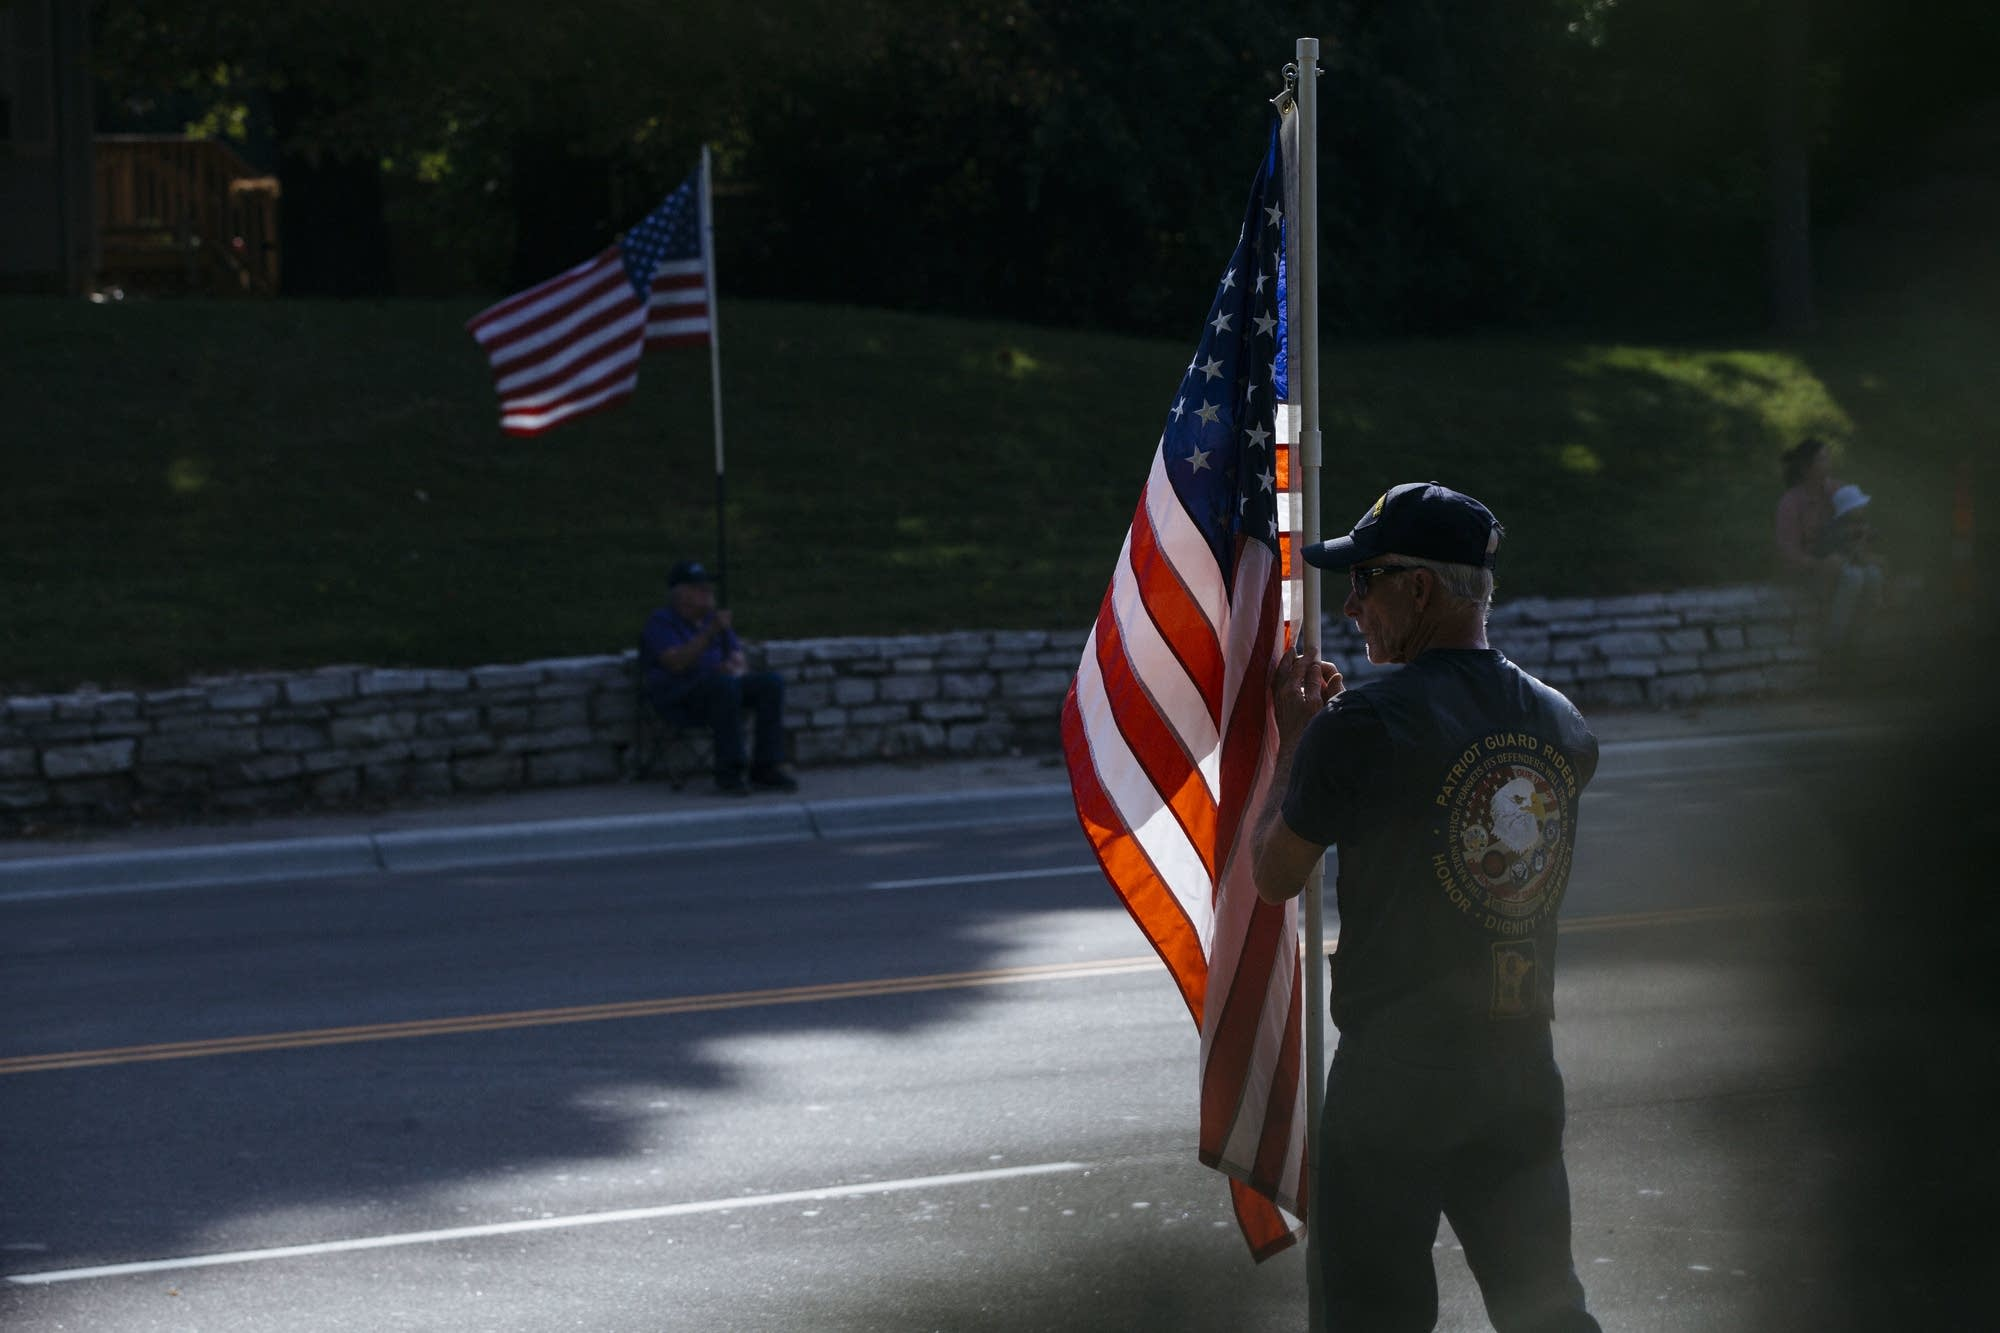 A member of the Patriot Guard Riders holds a flag on Highway 101.